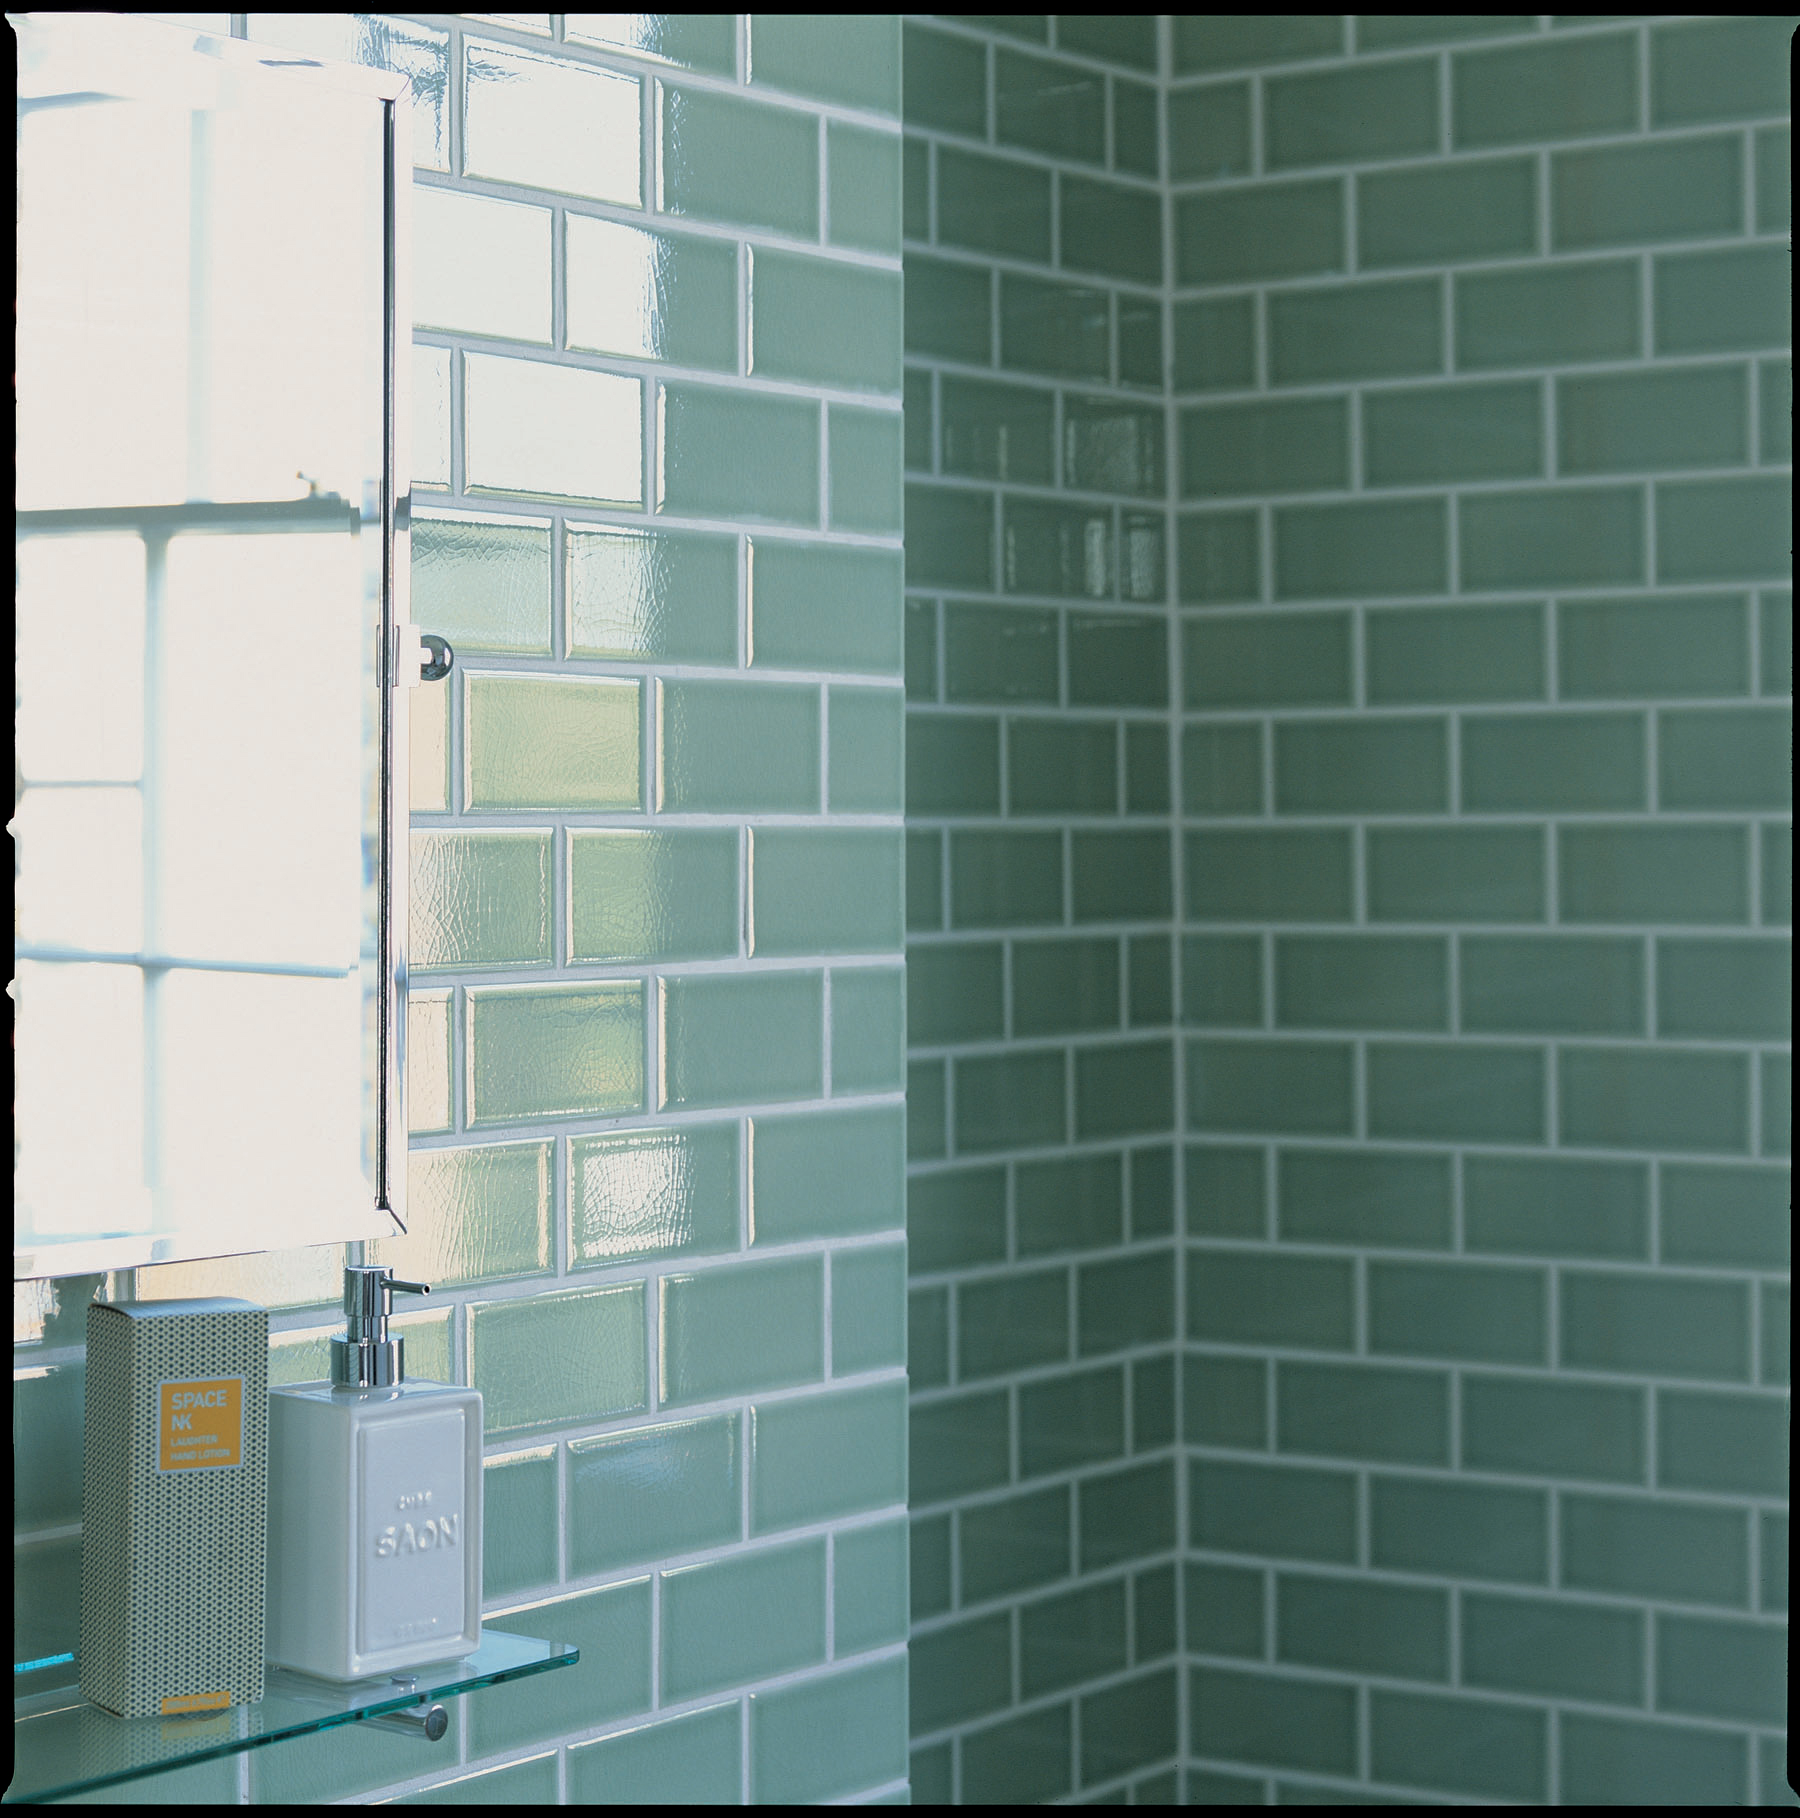 Tile Designs For Bathroom Ideas ~ Great pictures and ideas of old fashioned bathroom tile